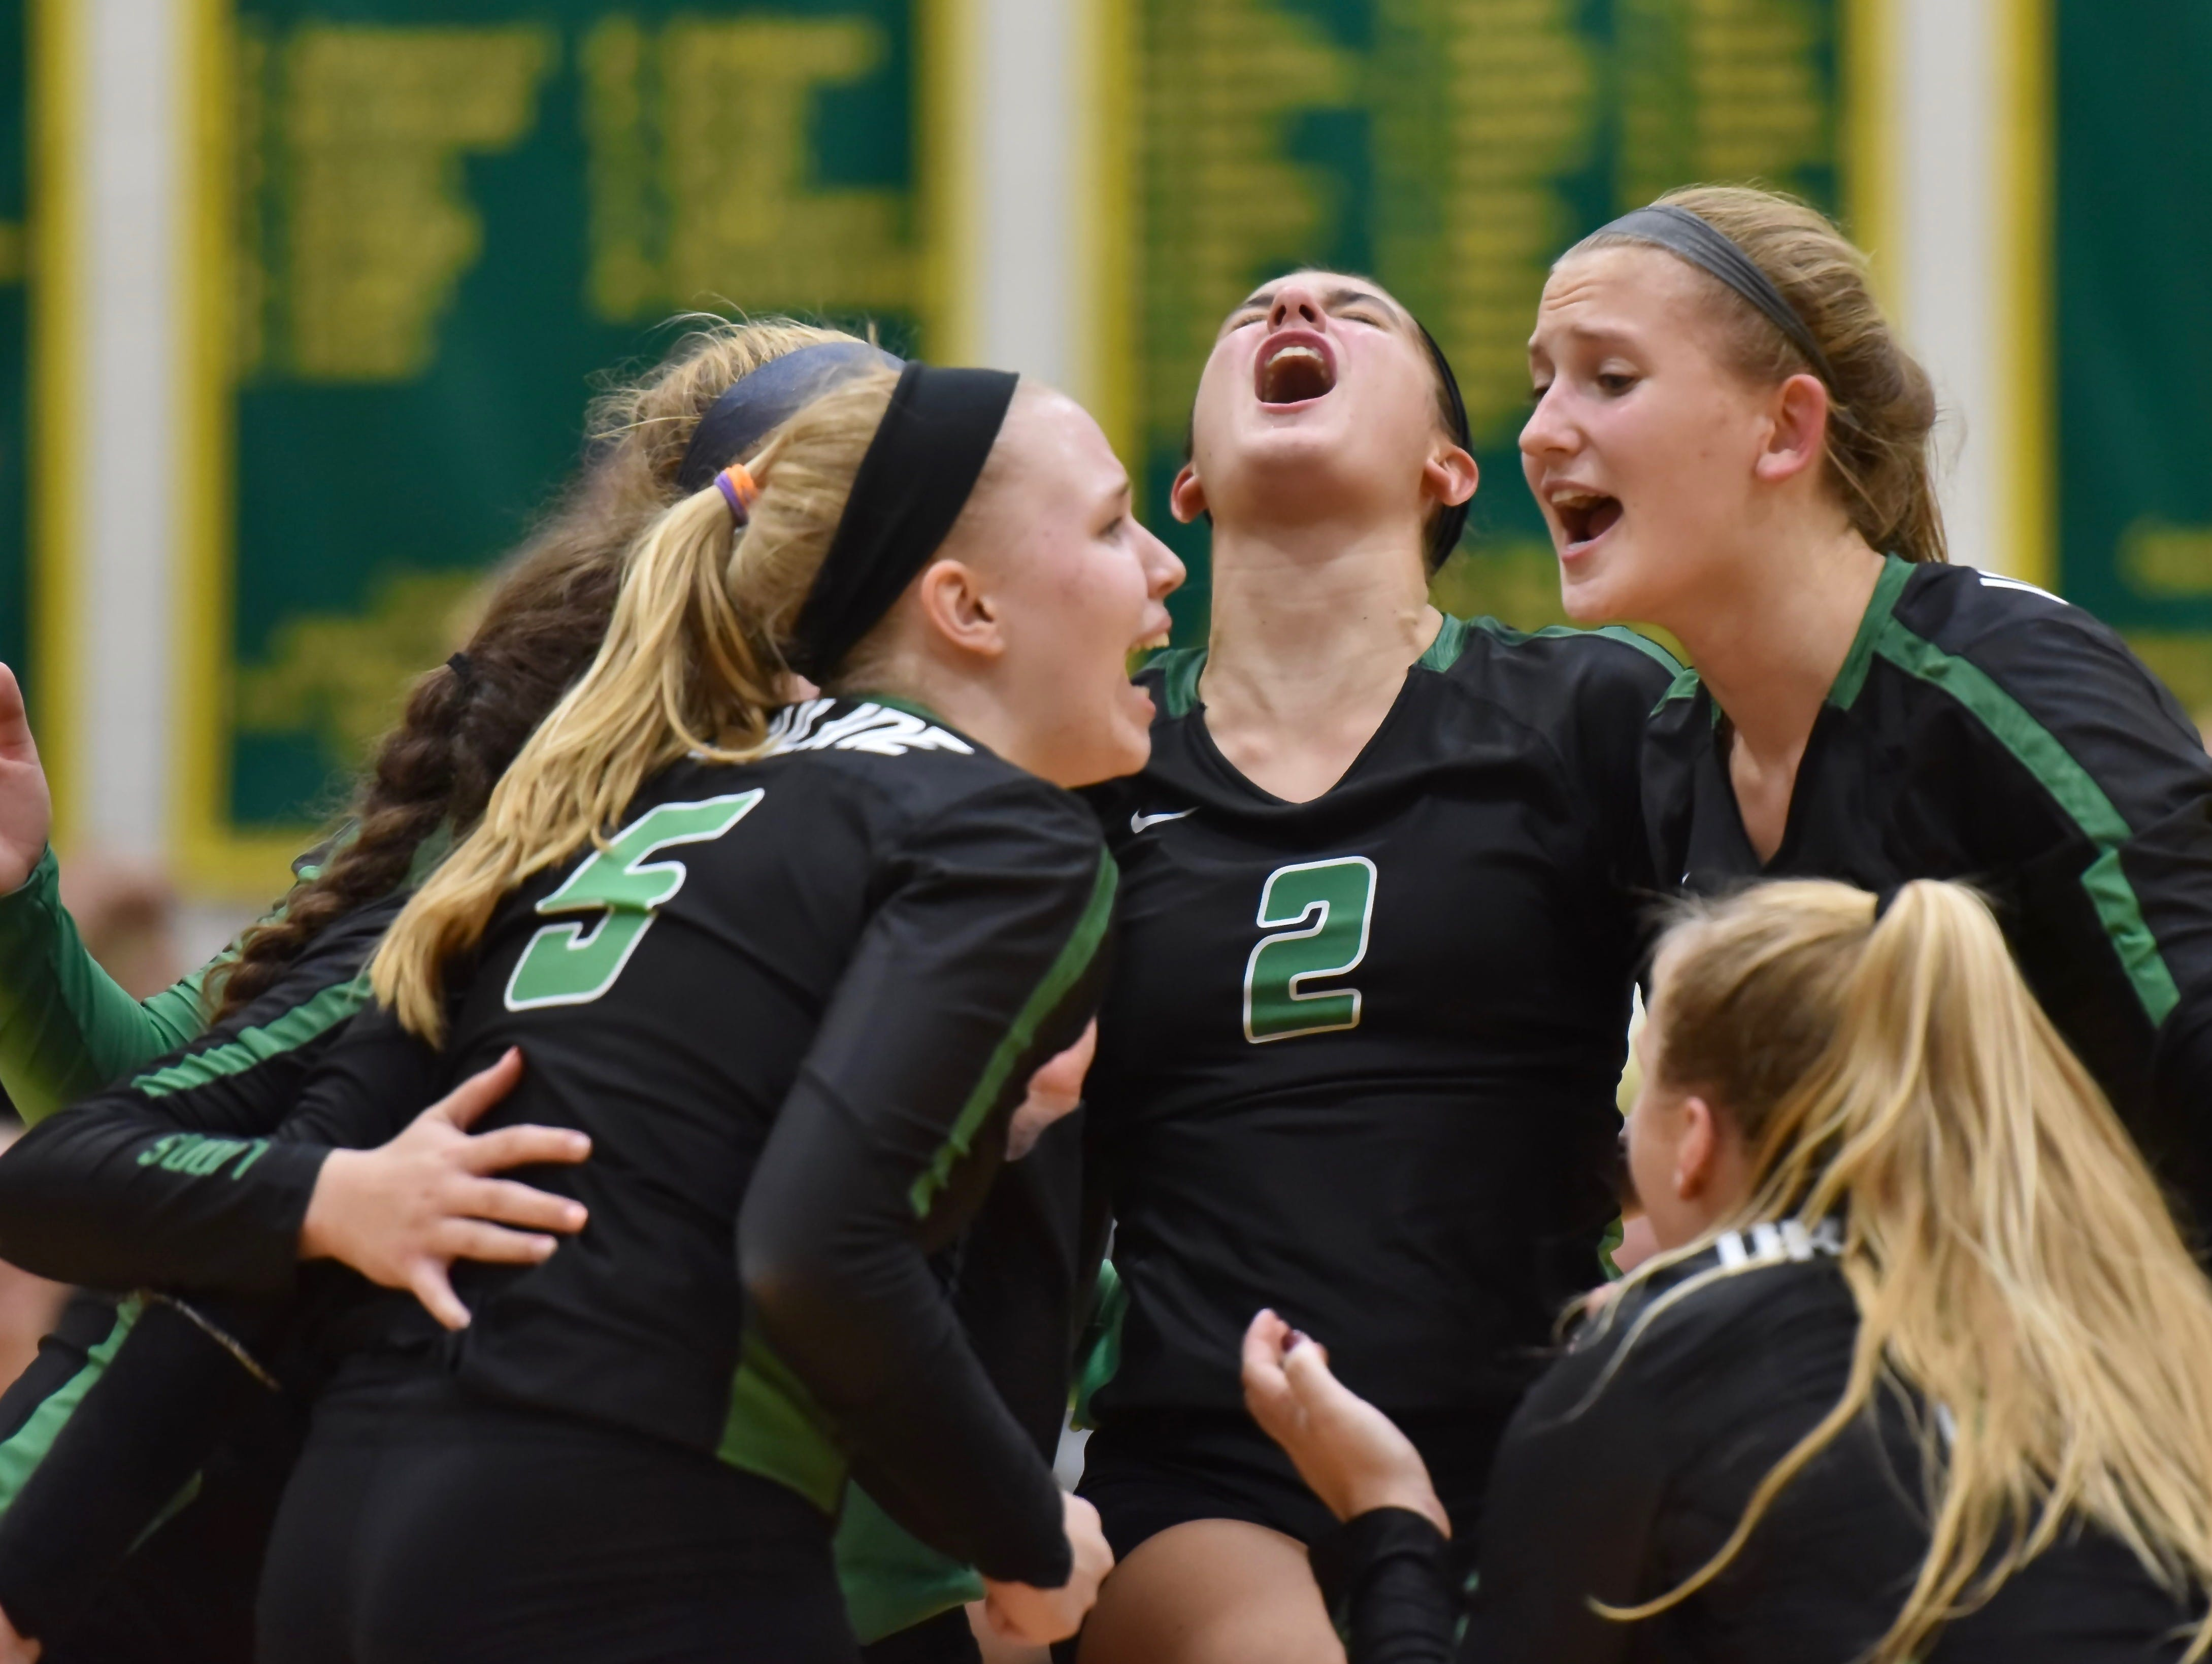 The Ursuline Lions celebrate a victory in the fourth set against MND, forcing a fifth and decisive set Tuesday, Sept. 11, 2018 at Ursuline Academy